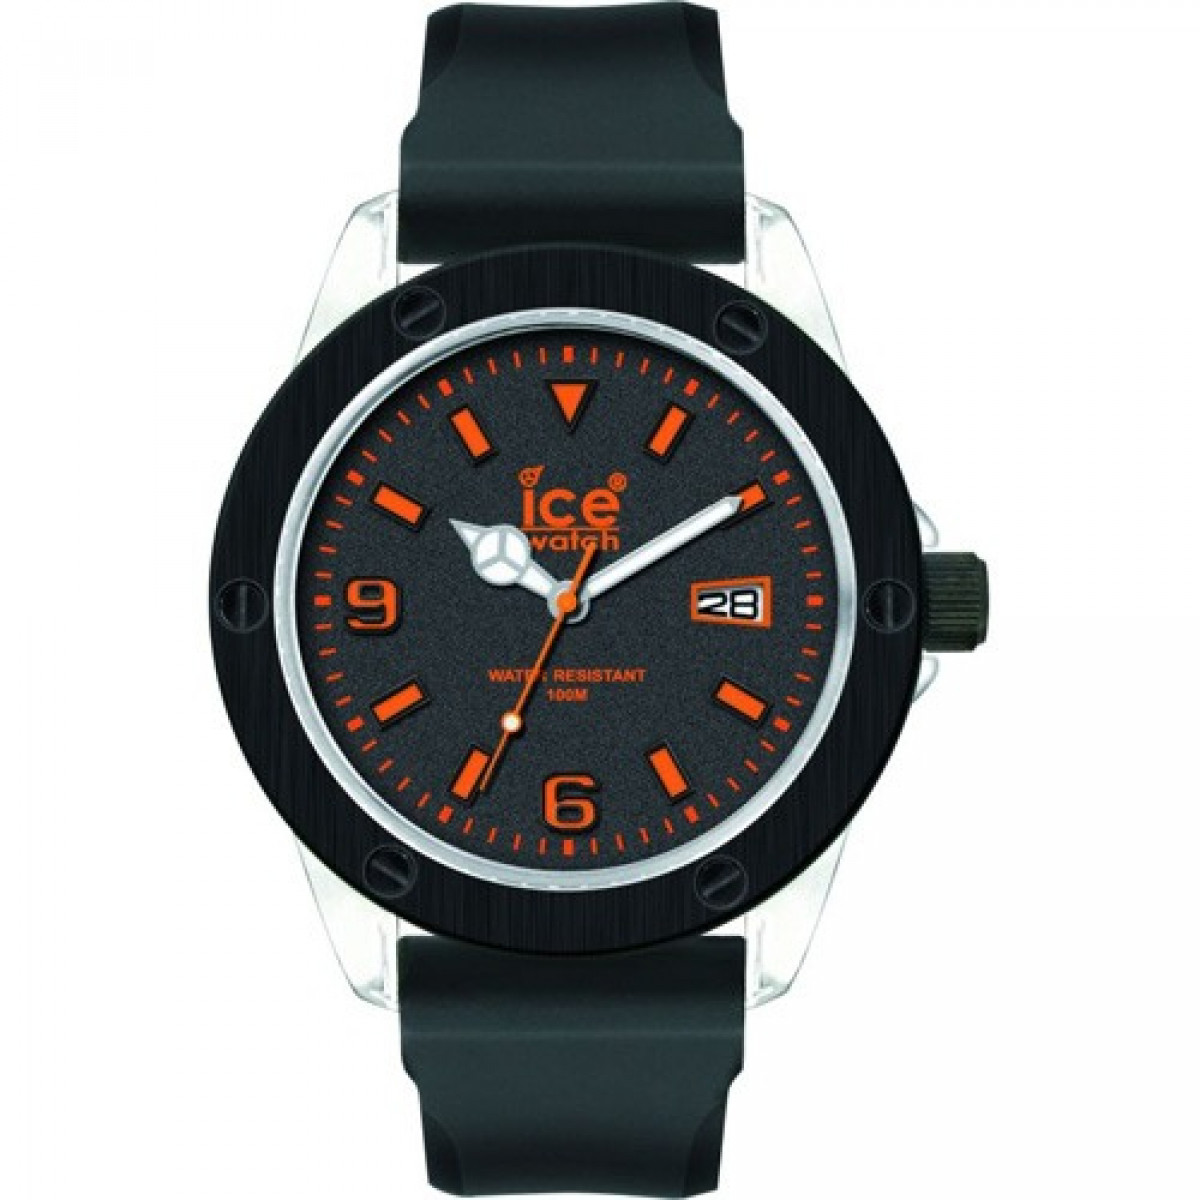 Часовник Ice-Watch XX.OE.XX.S.09 Big